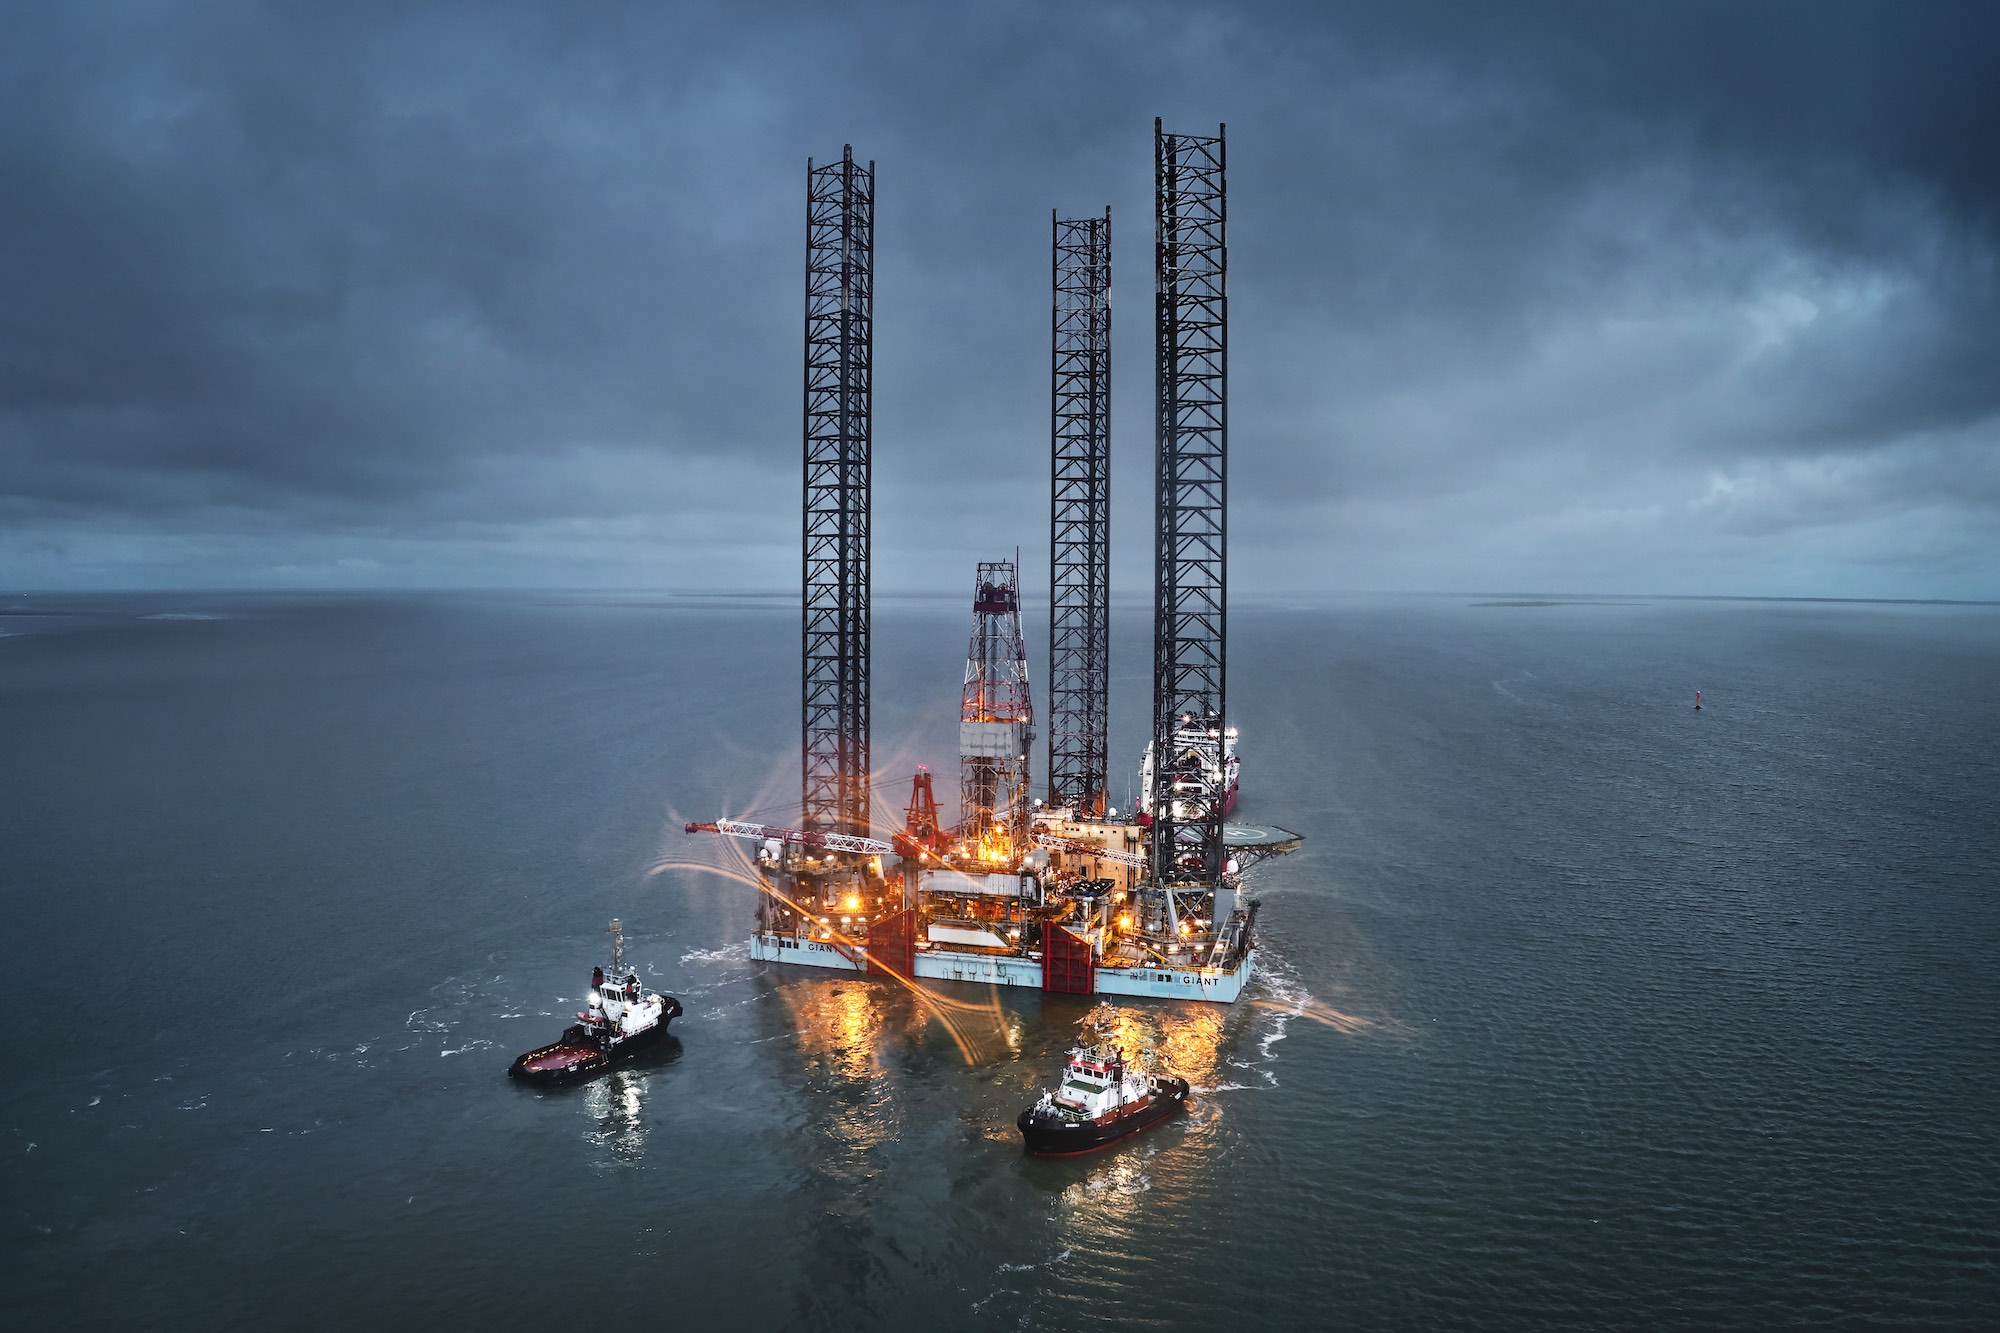 New LOTOS Petrobaltic platform headed for Gdańsk